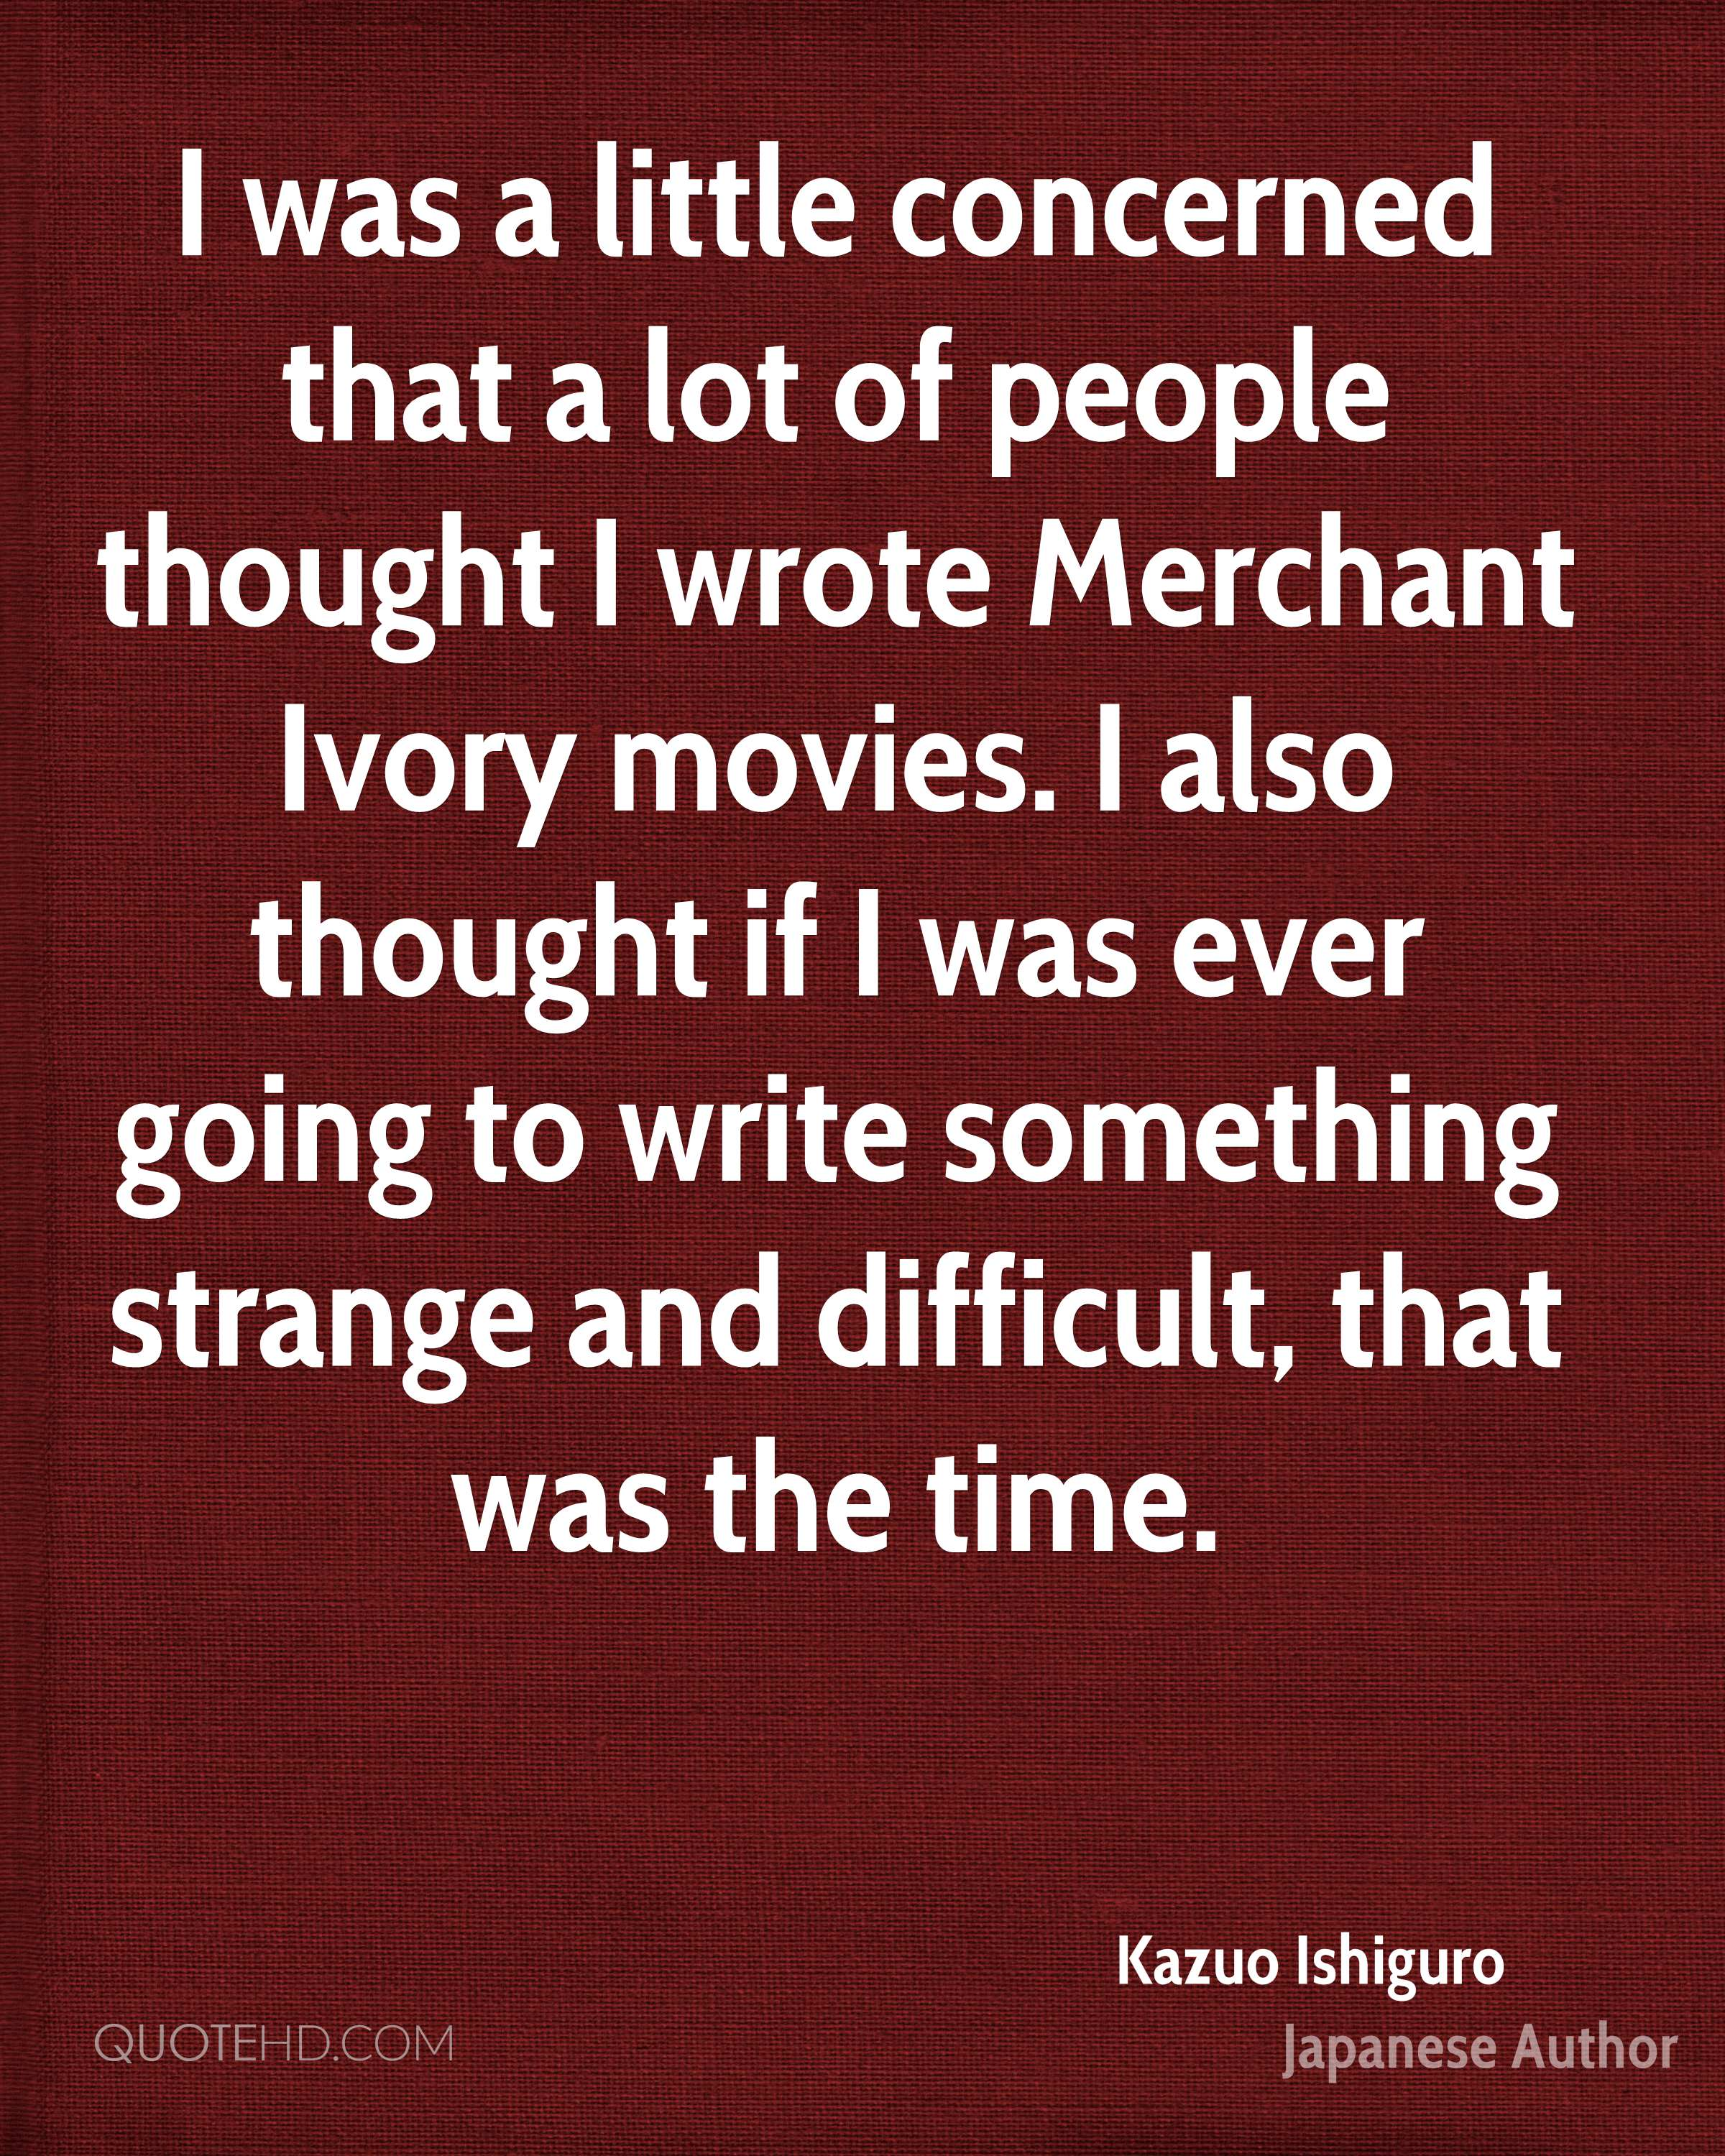 I was a little concerned that a lot of people thought I wrote Merchant Ivory movies. I also thought if I was ever going to write something strange and difficult, that was the time.